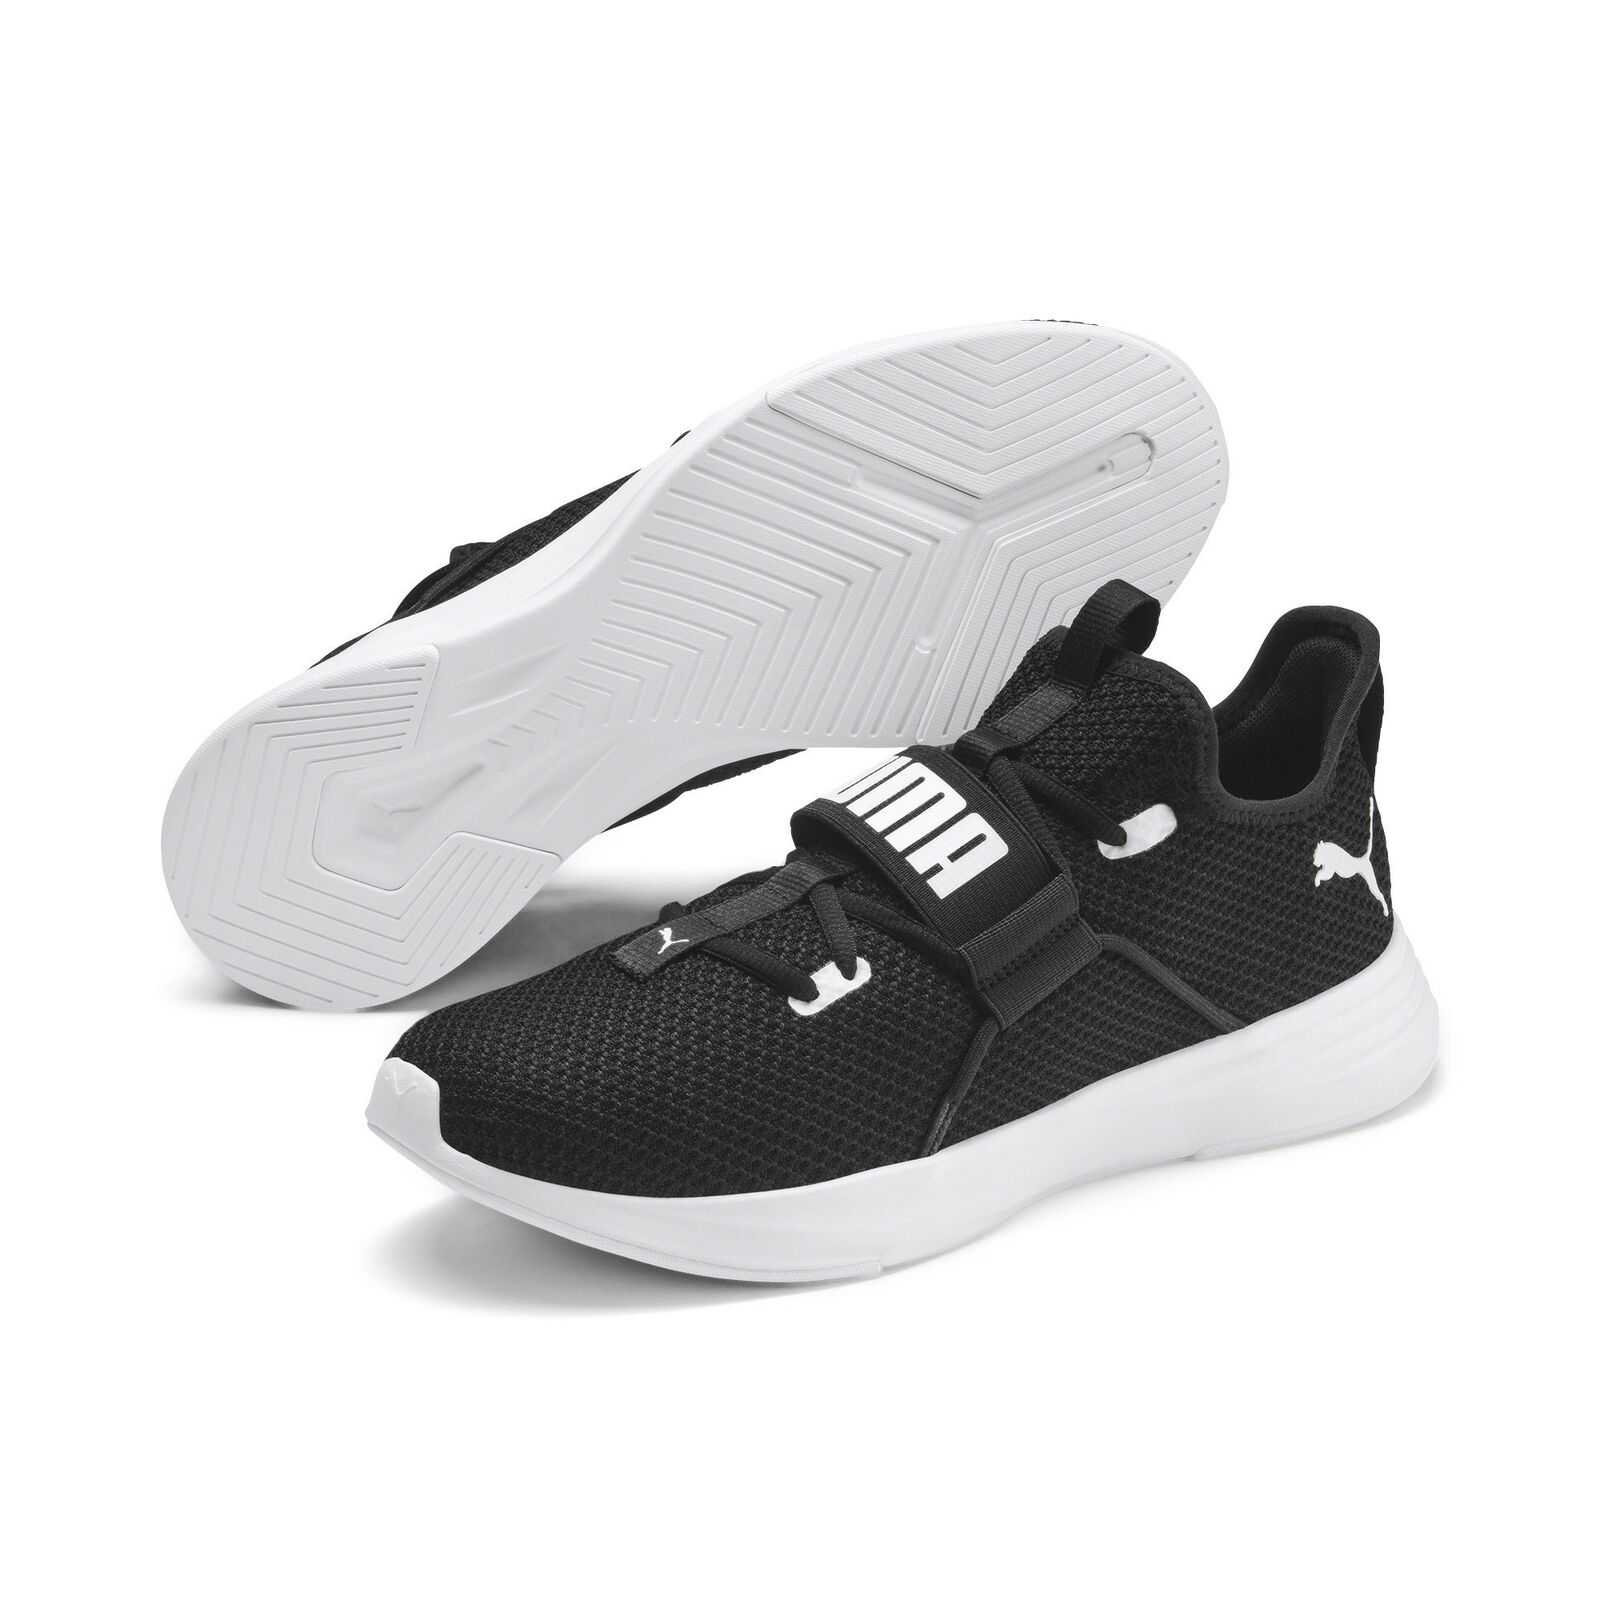 PUMA Persist XT Knit Men's Training Shoes Men Shoe Training